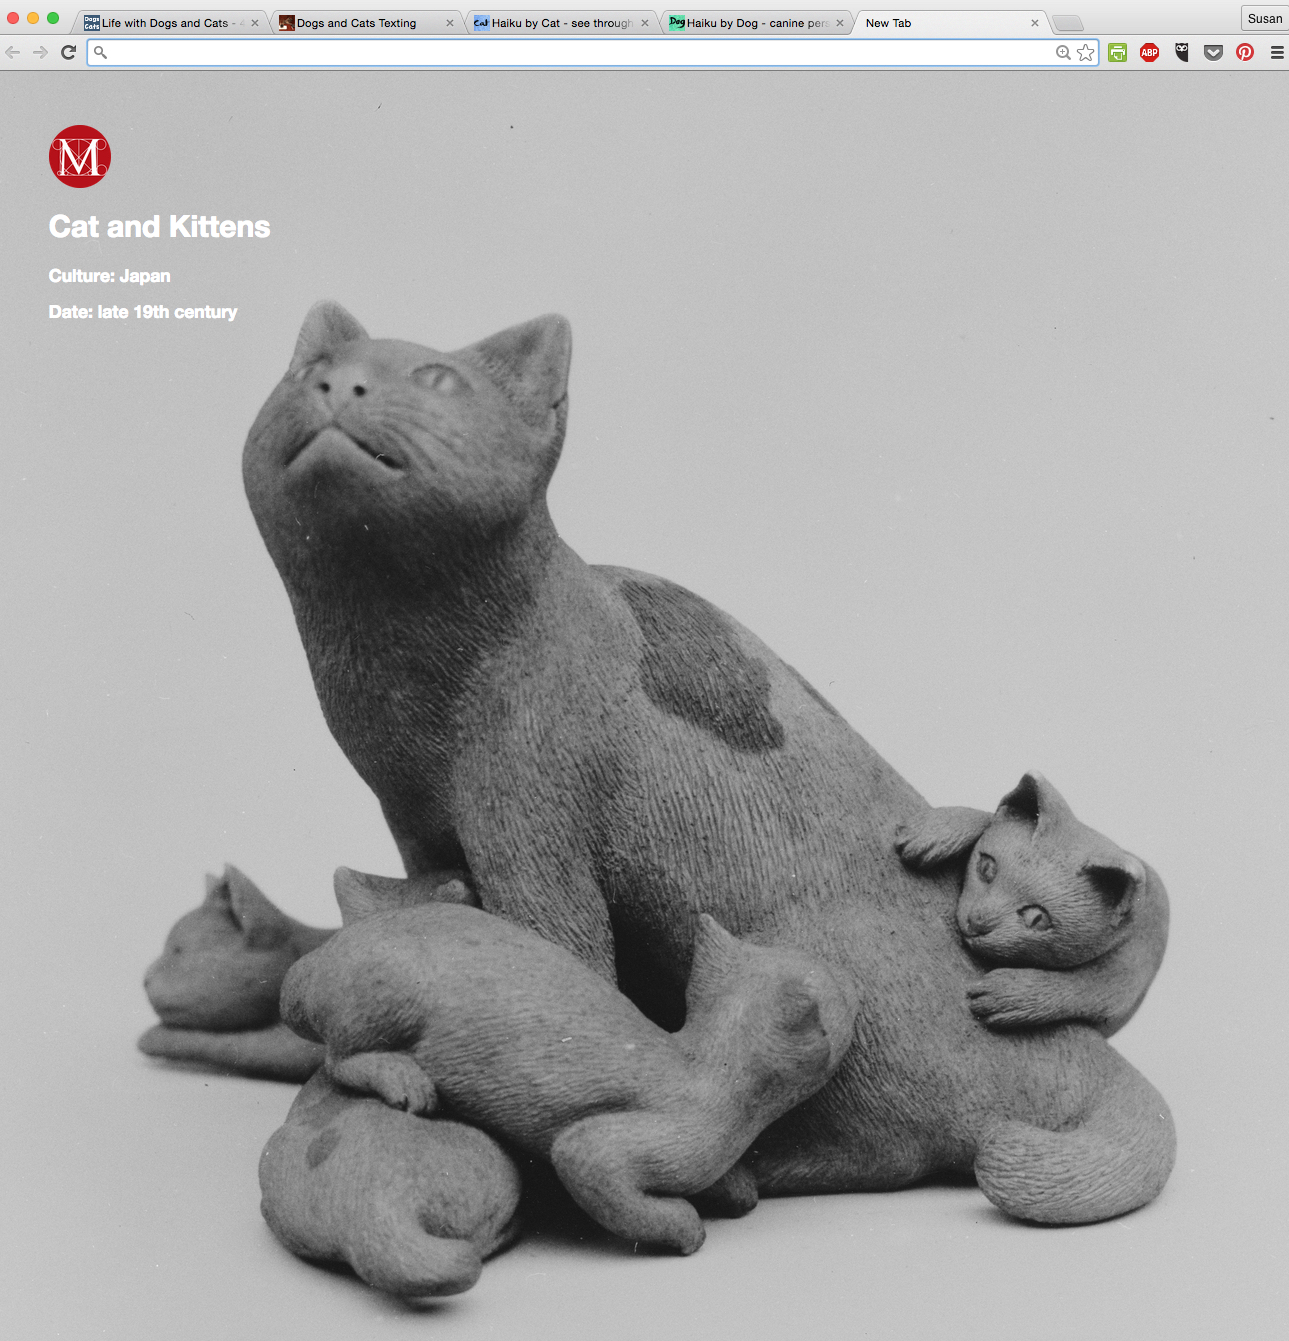 Mew Met Chrome extension Cat and Kittens  sculpture 19th century Japan